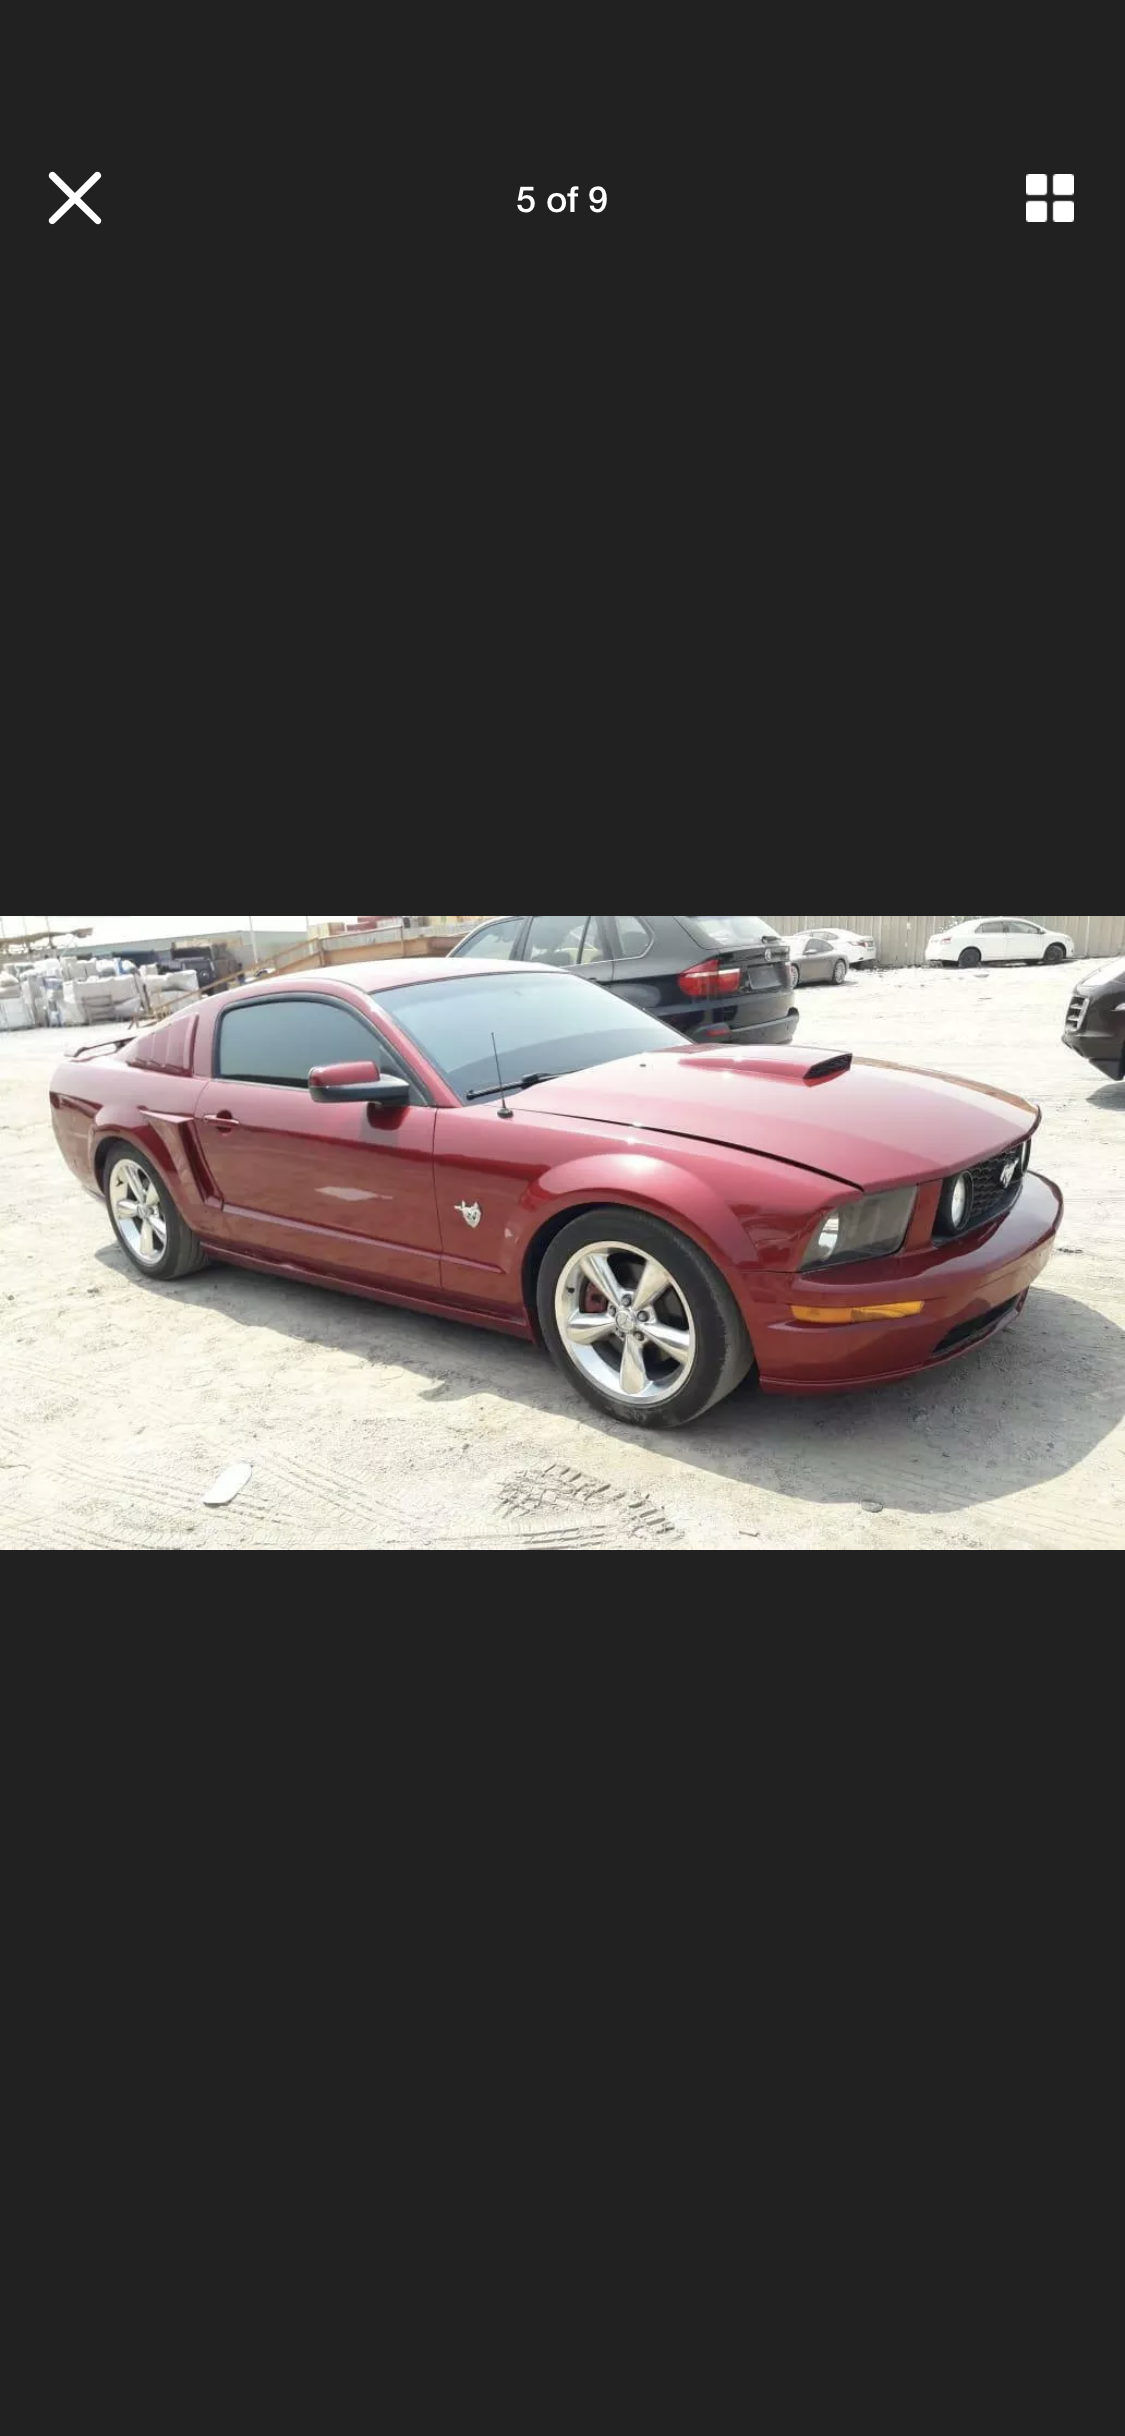 2009 FORD MUSTANG 4.6 V8 GT RARE MANUAL LHD FRESH IMPORT For Sale (picture 5 of 6)